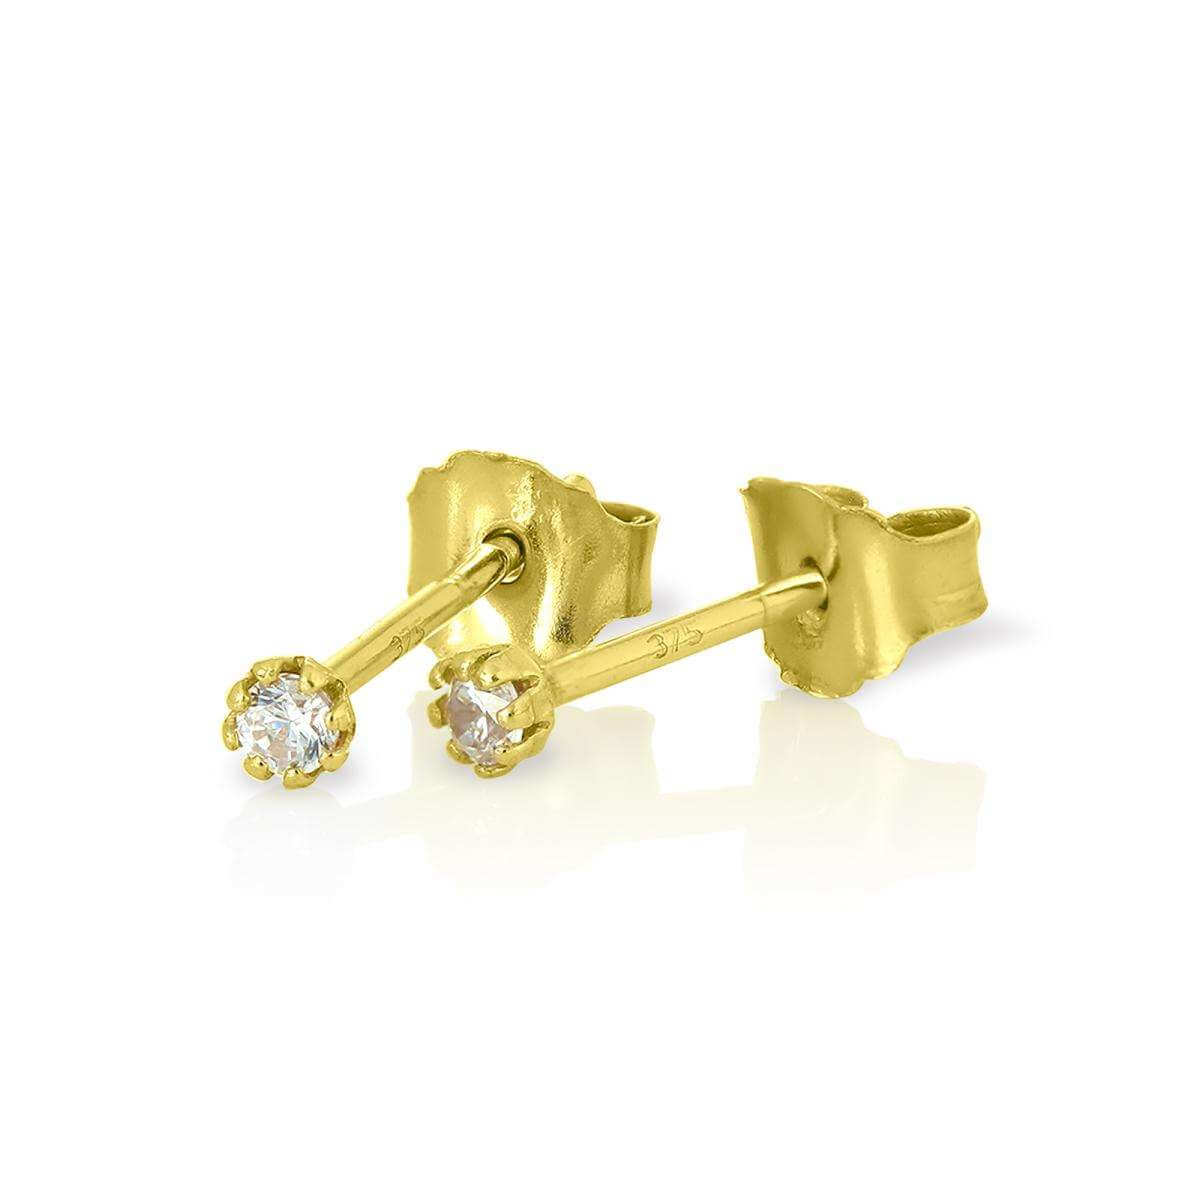 9ct Gold & Round 2mm CZ Crystal Stud Earrings